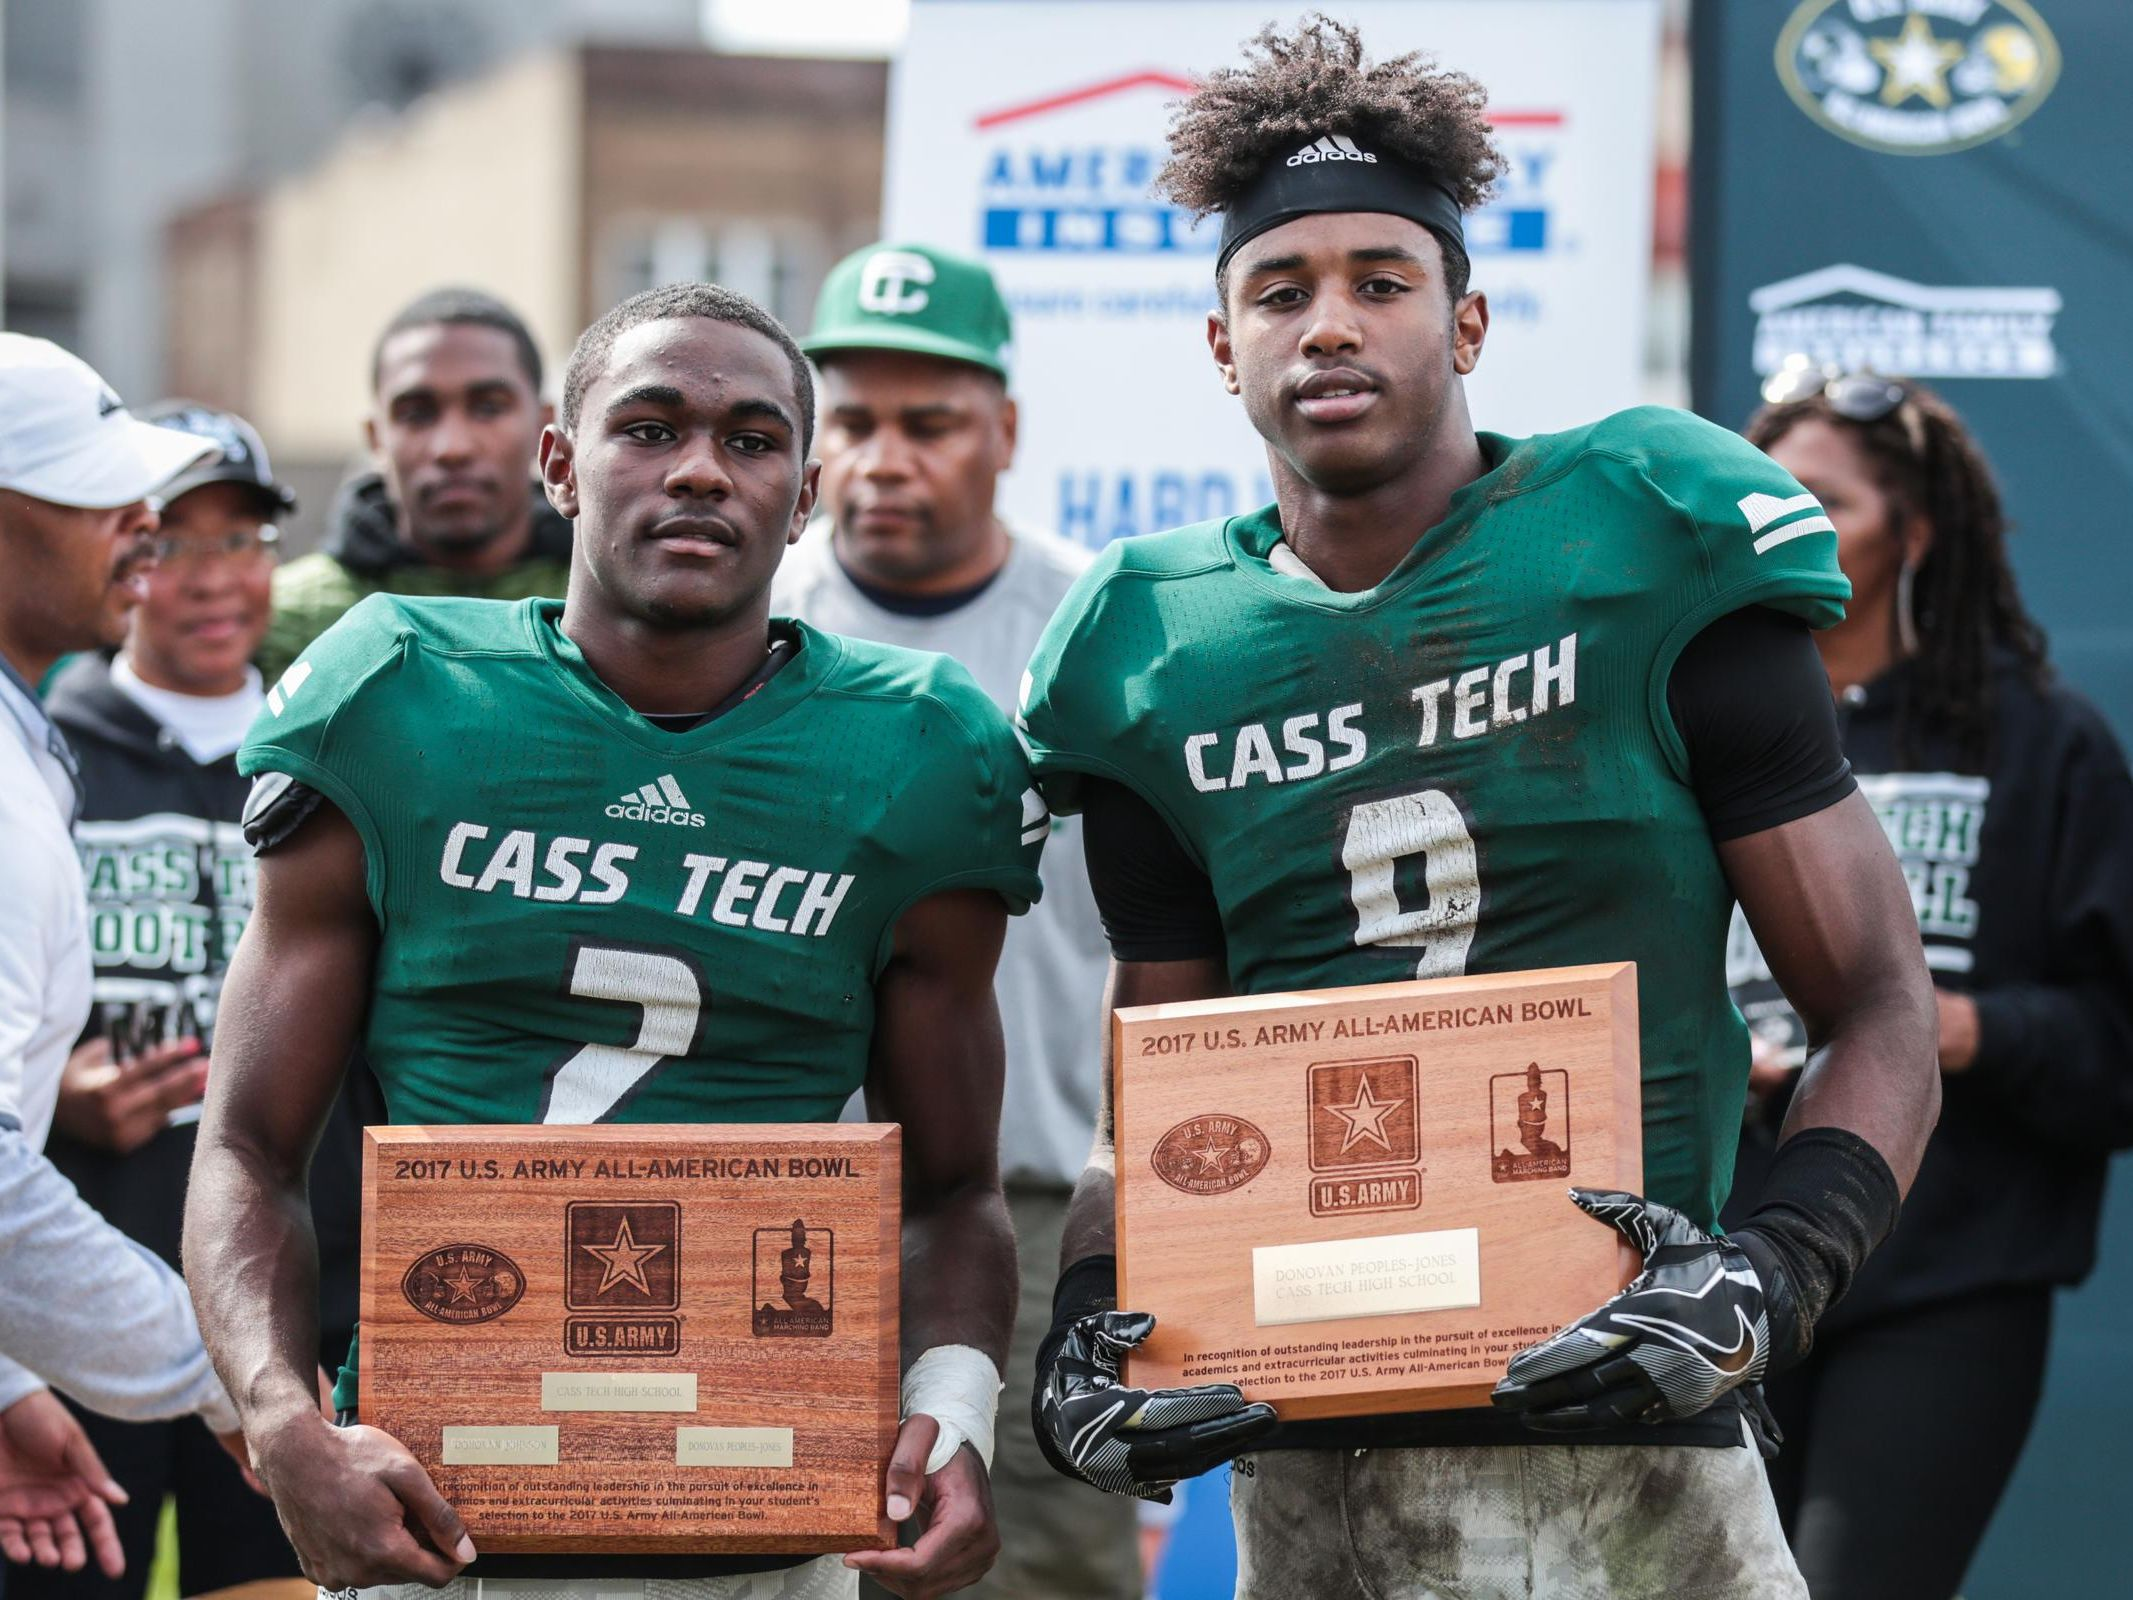 Detroit Cass Tech has four of the top-15 seniors in the state, including No. 8 Donovan Johnson, left, and No. 1 Donovan Peoples-Jones.